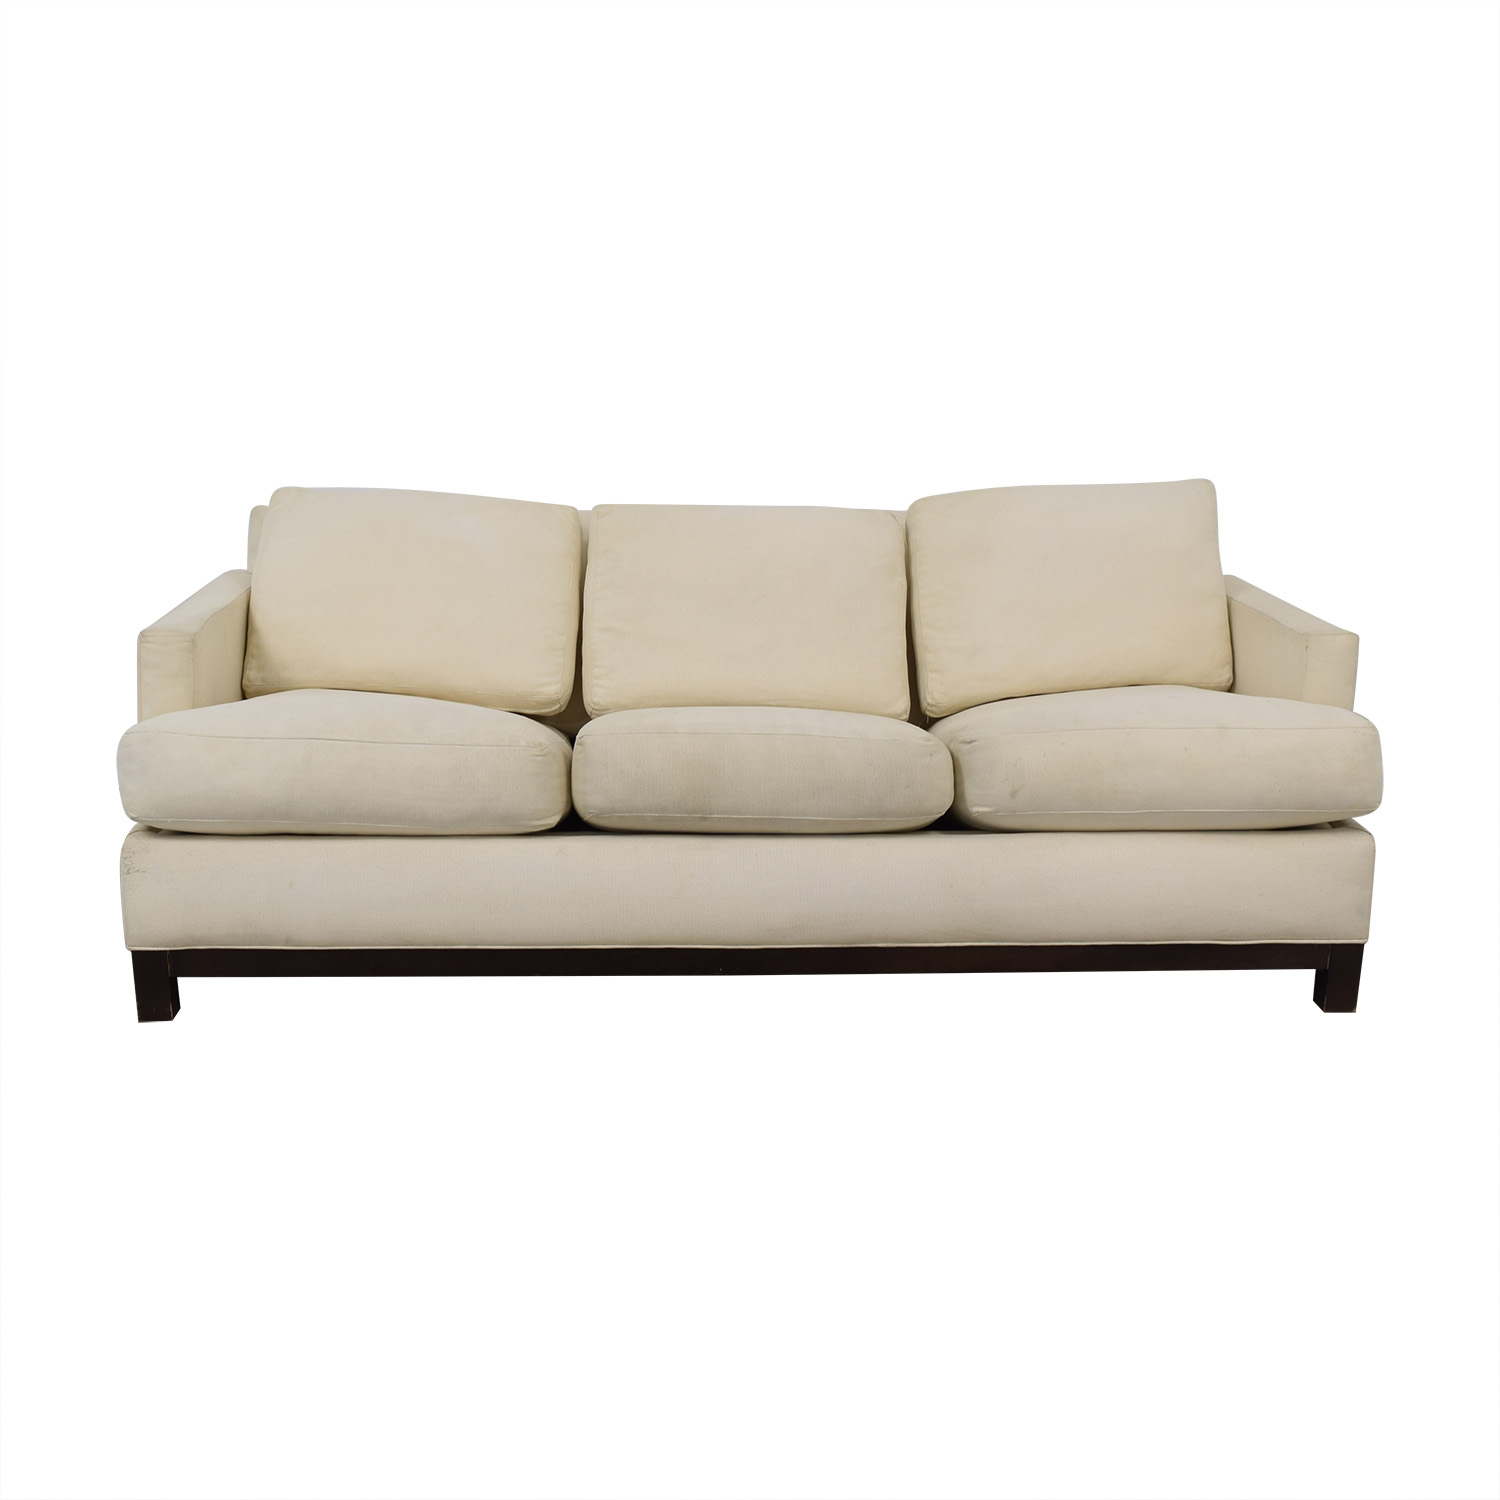 Rowe Furniture Rowe Furniture Queen Sleeper Sofa on sale